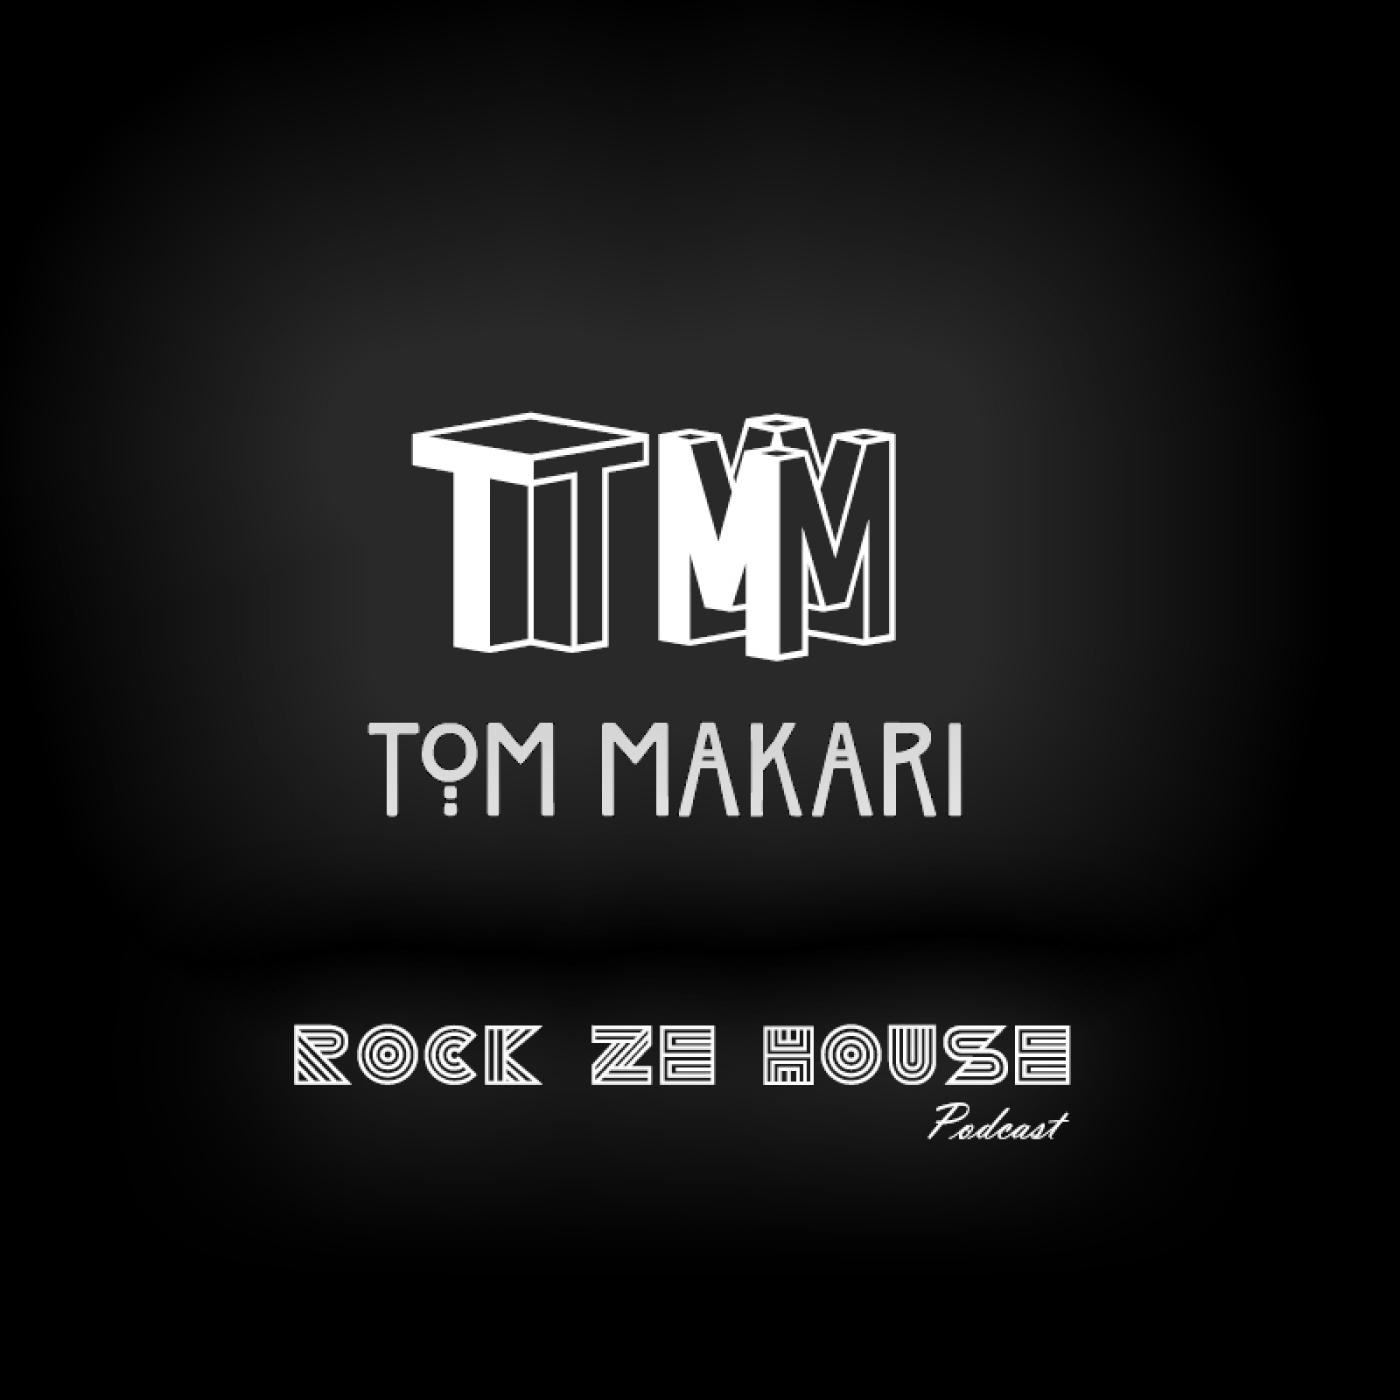 Tom Makari - Rock Ze House